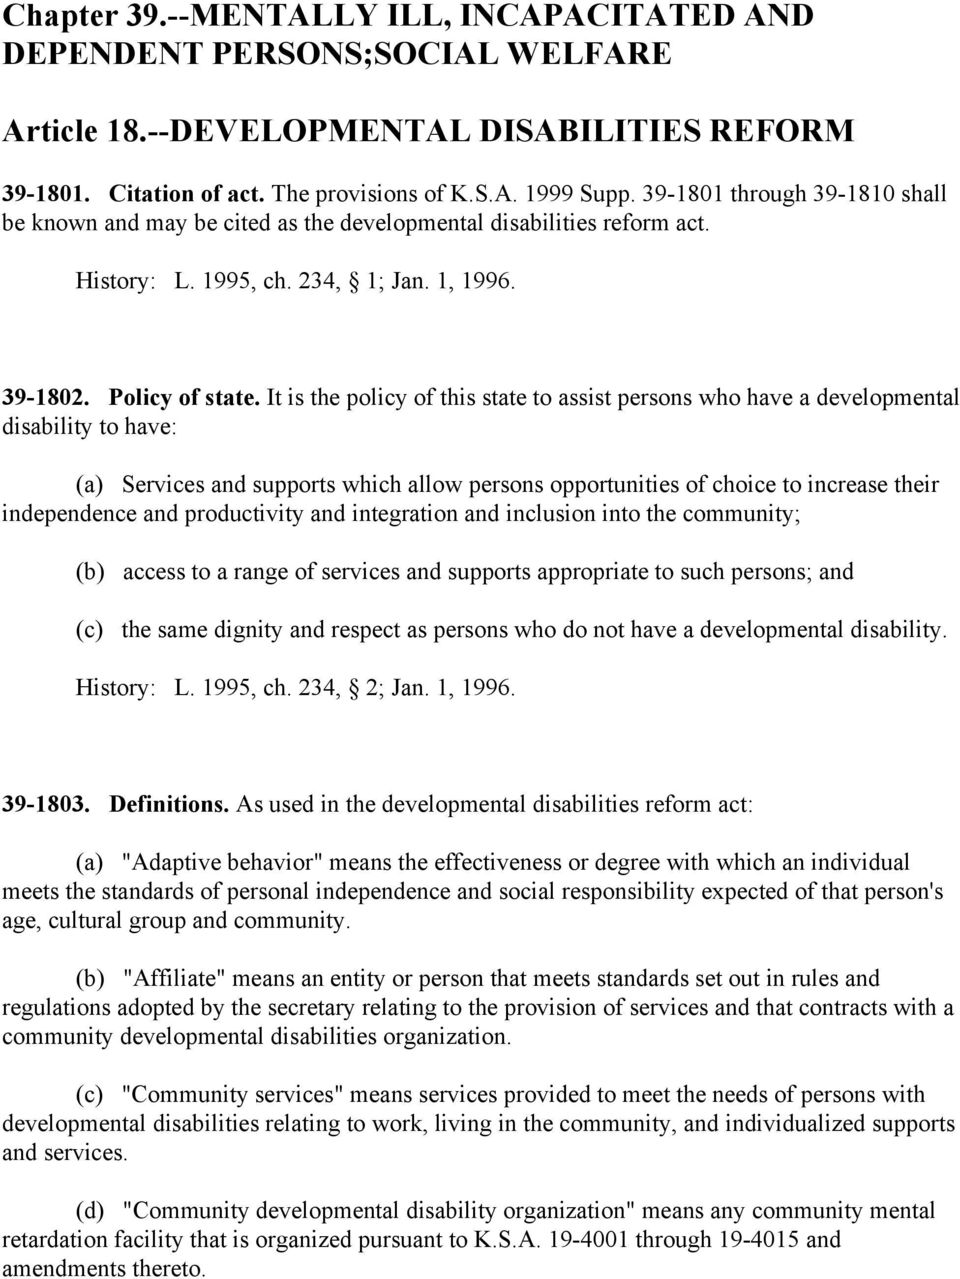 It is the policy of this state to assist persons who have a developmental disability to have: (a) Services and supports which allow persons opportunities of choice to increase their independence and